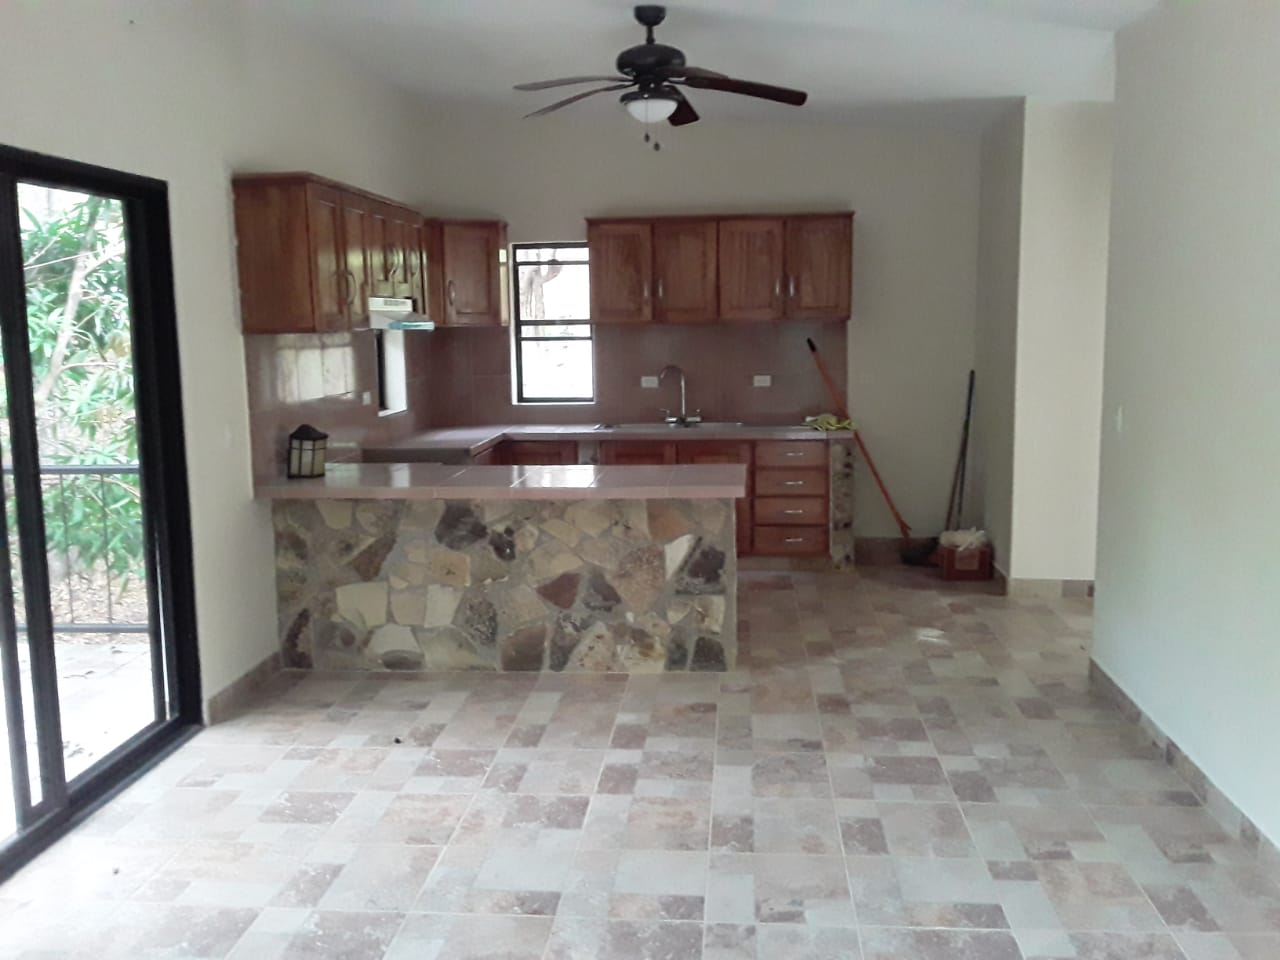 Sold Nicaragua Real Estate San Juan Del Sur 2 bedroom 2 bathroom